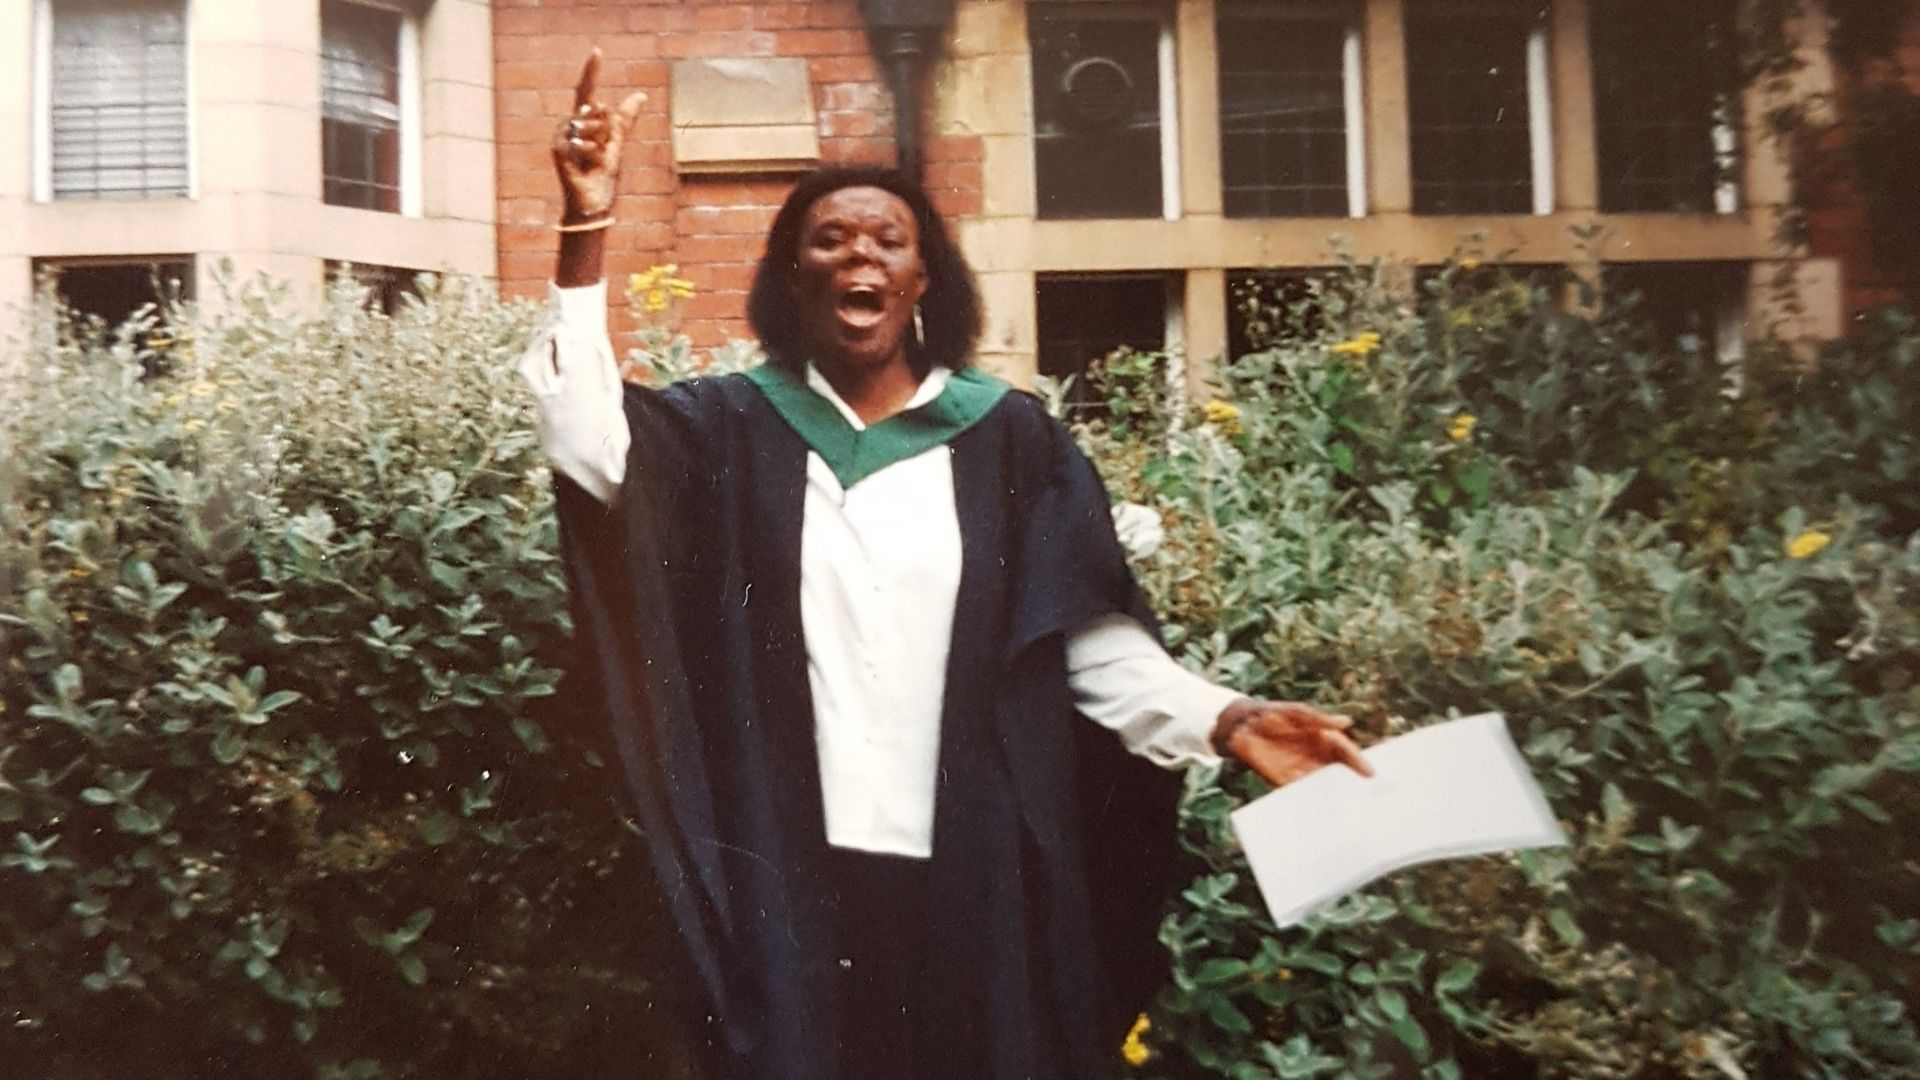 A woman, early 20s, in her graduation robes. She is holding a certificate in one hand and pointing in the air with her other other hand. She is excitedly shouting. Behind her is a bush and a building.